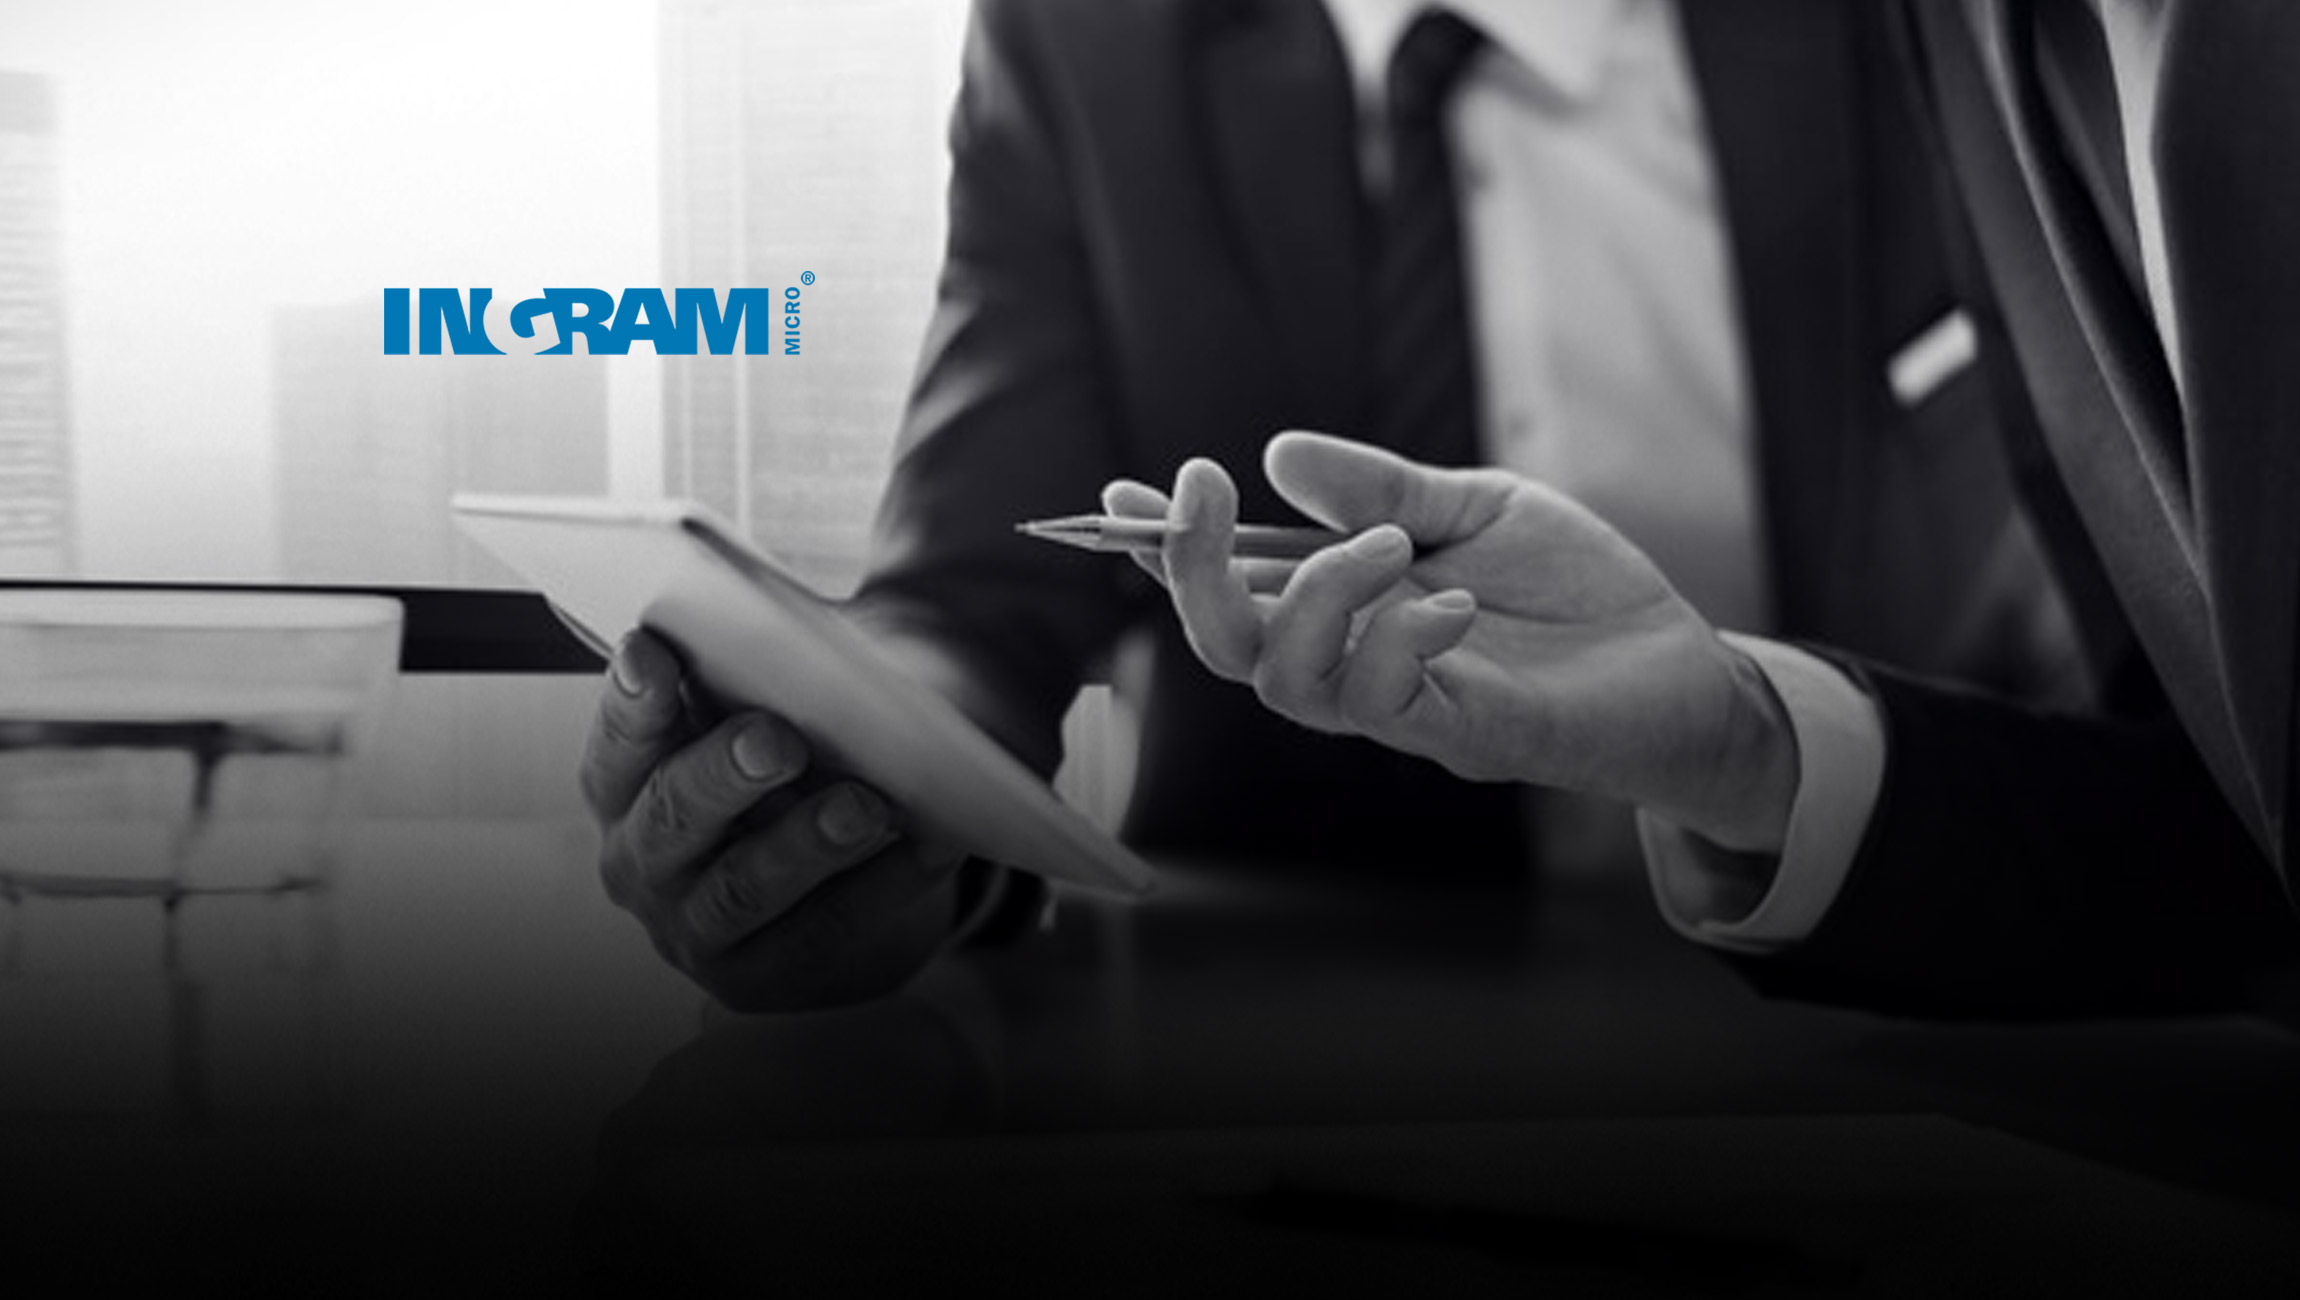 Ingram Micro Commerce & Lifecycle Services to Add Over 4,000 Jobs to Support eCommerce Order Volume